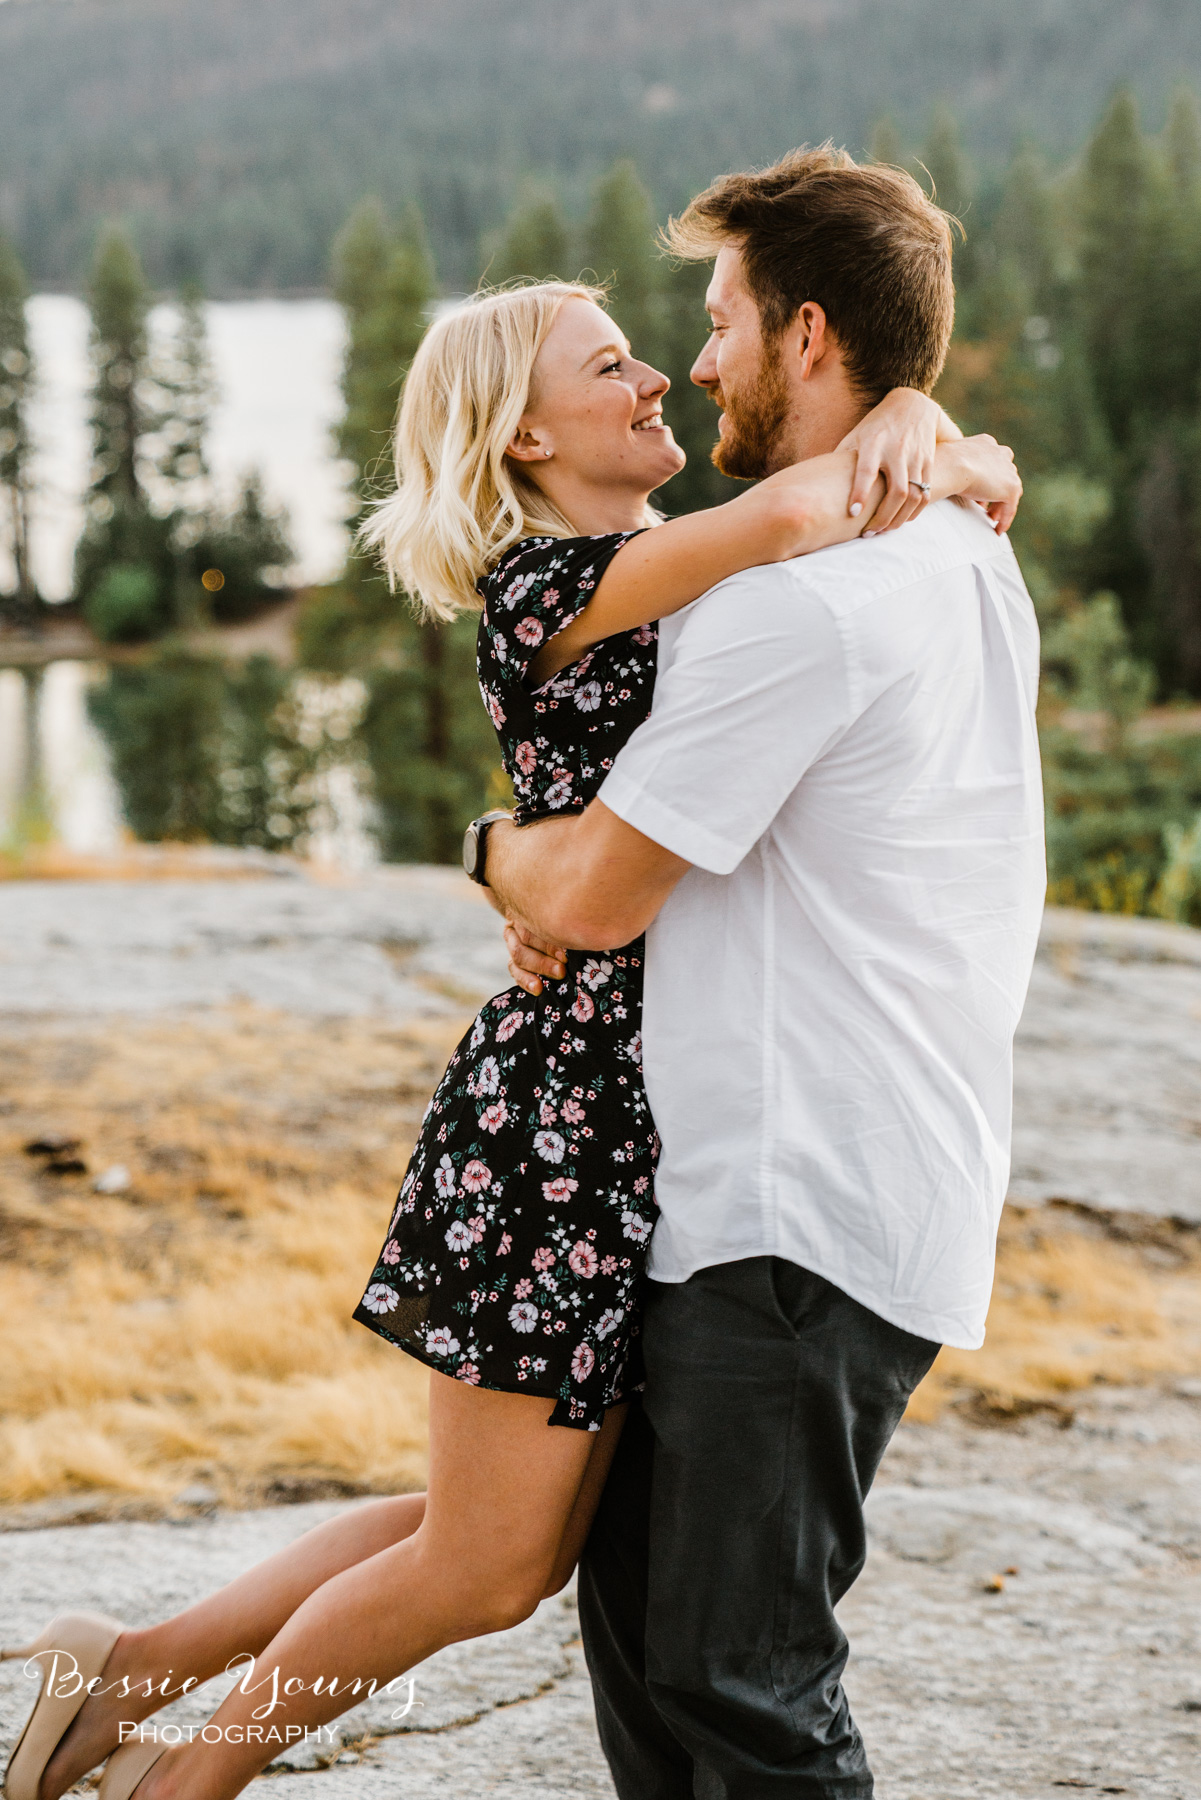 Shaver Lake Engagement Portraits - Meghan and Clay -  by Bessie Young Photography 2018 A7R2-271.jpg